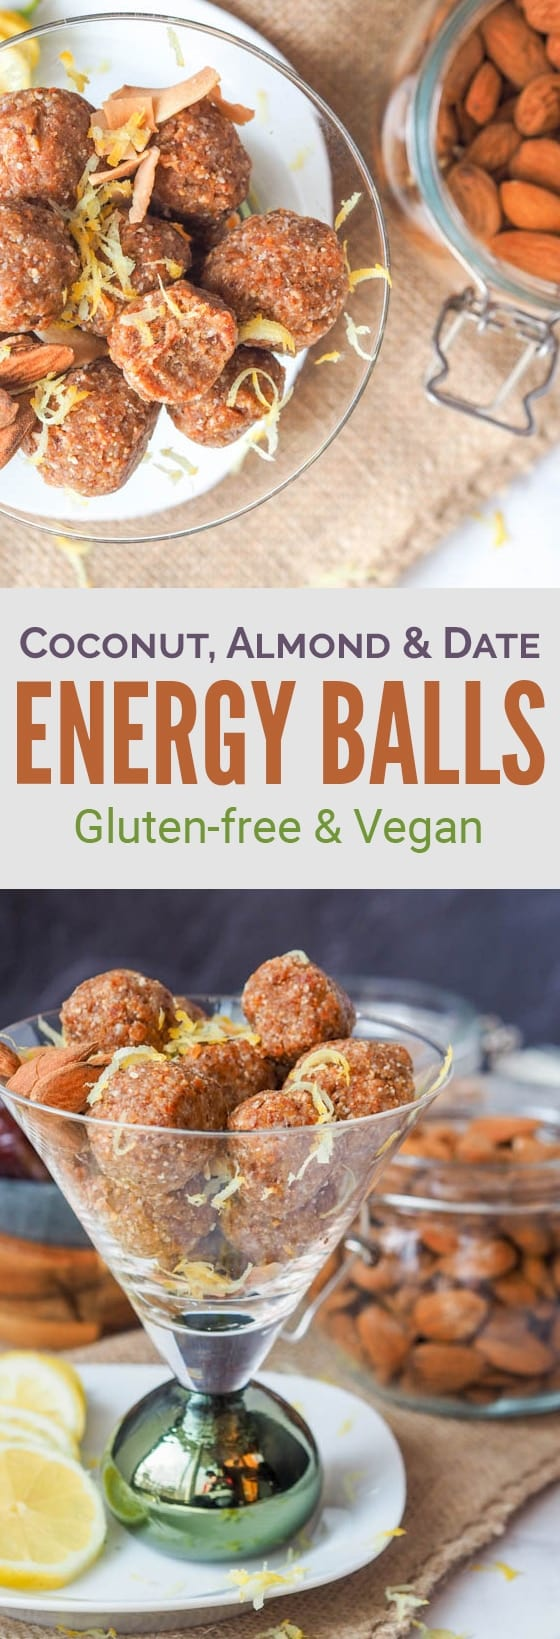 Five ingredient coconut almond date energy balls come together in under 15 minutes and make for a super zesty and refreshing snack (or dessert) that is also healthy, gluten-free, vegan and refined sugar free.